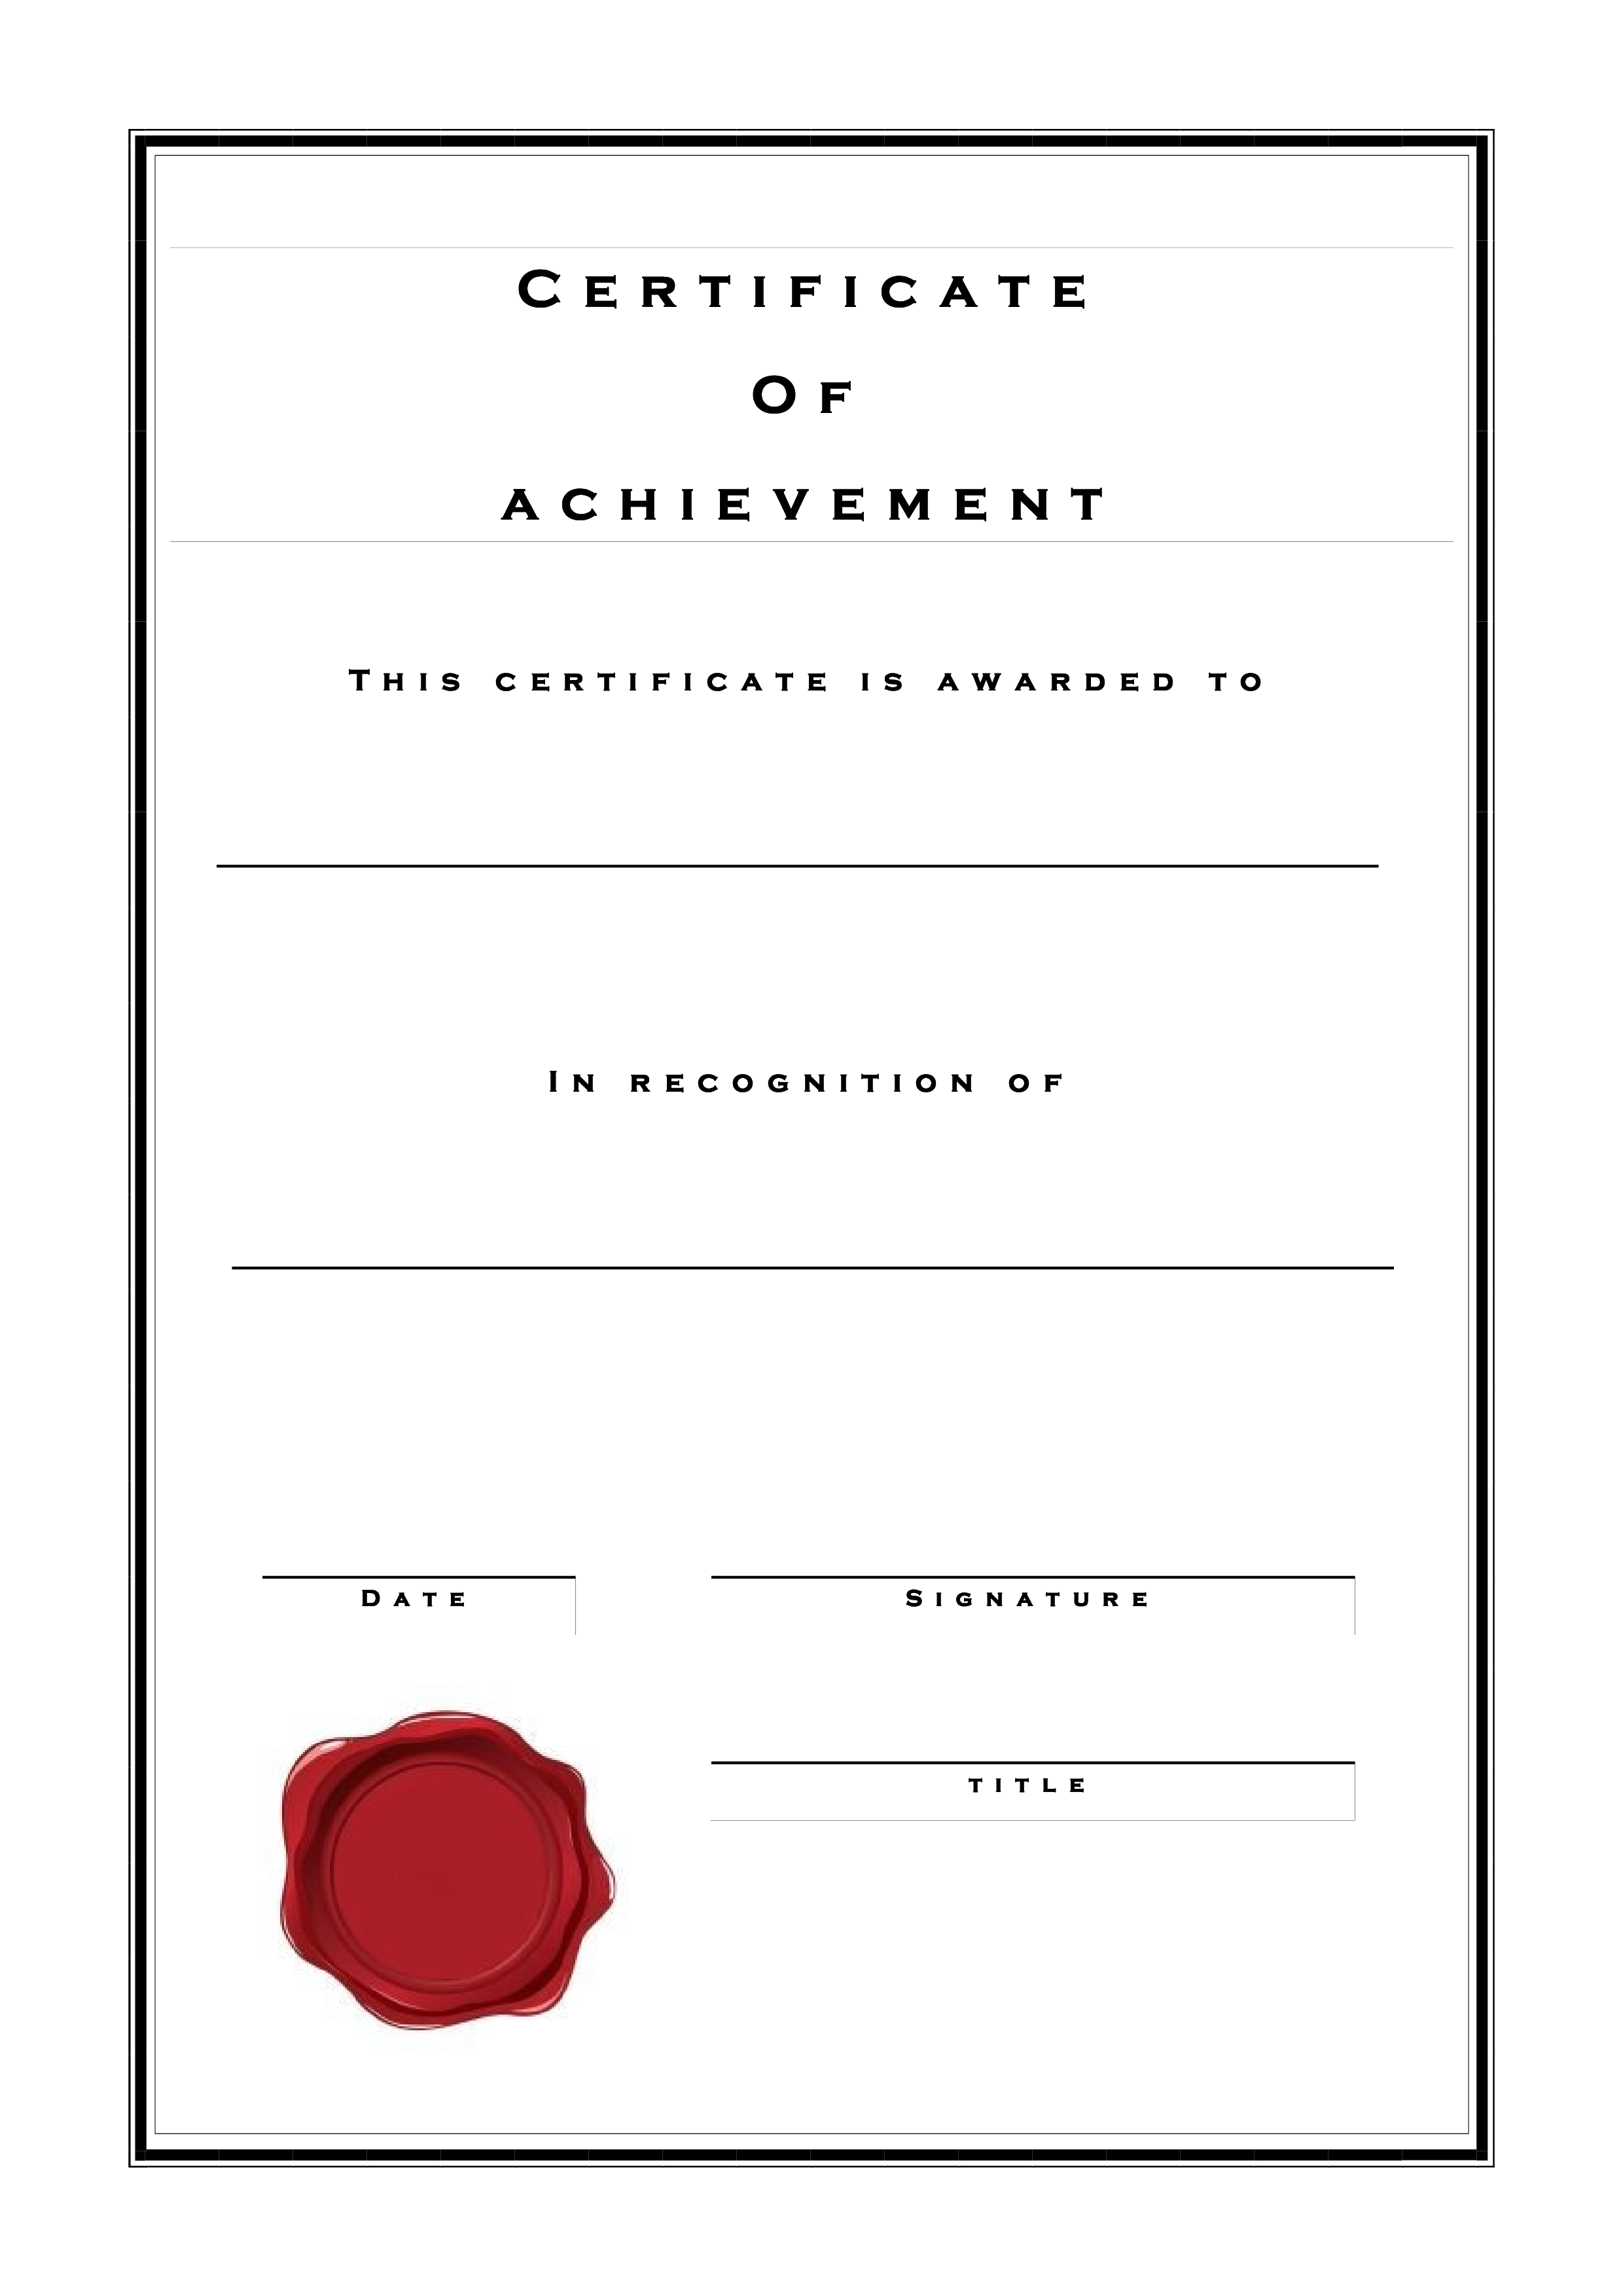 Certificate Of Achievement Formal Style main image